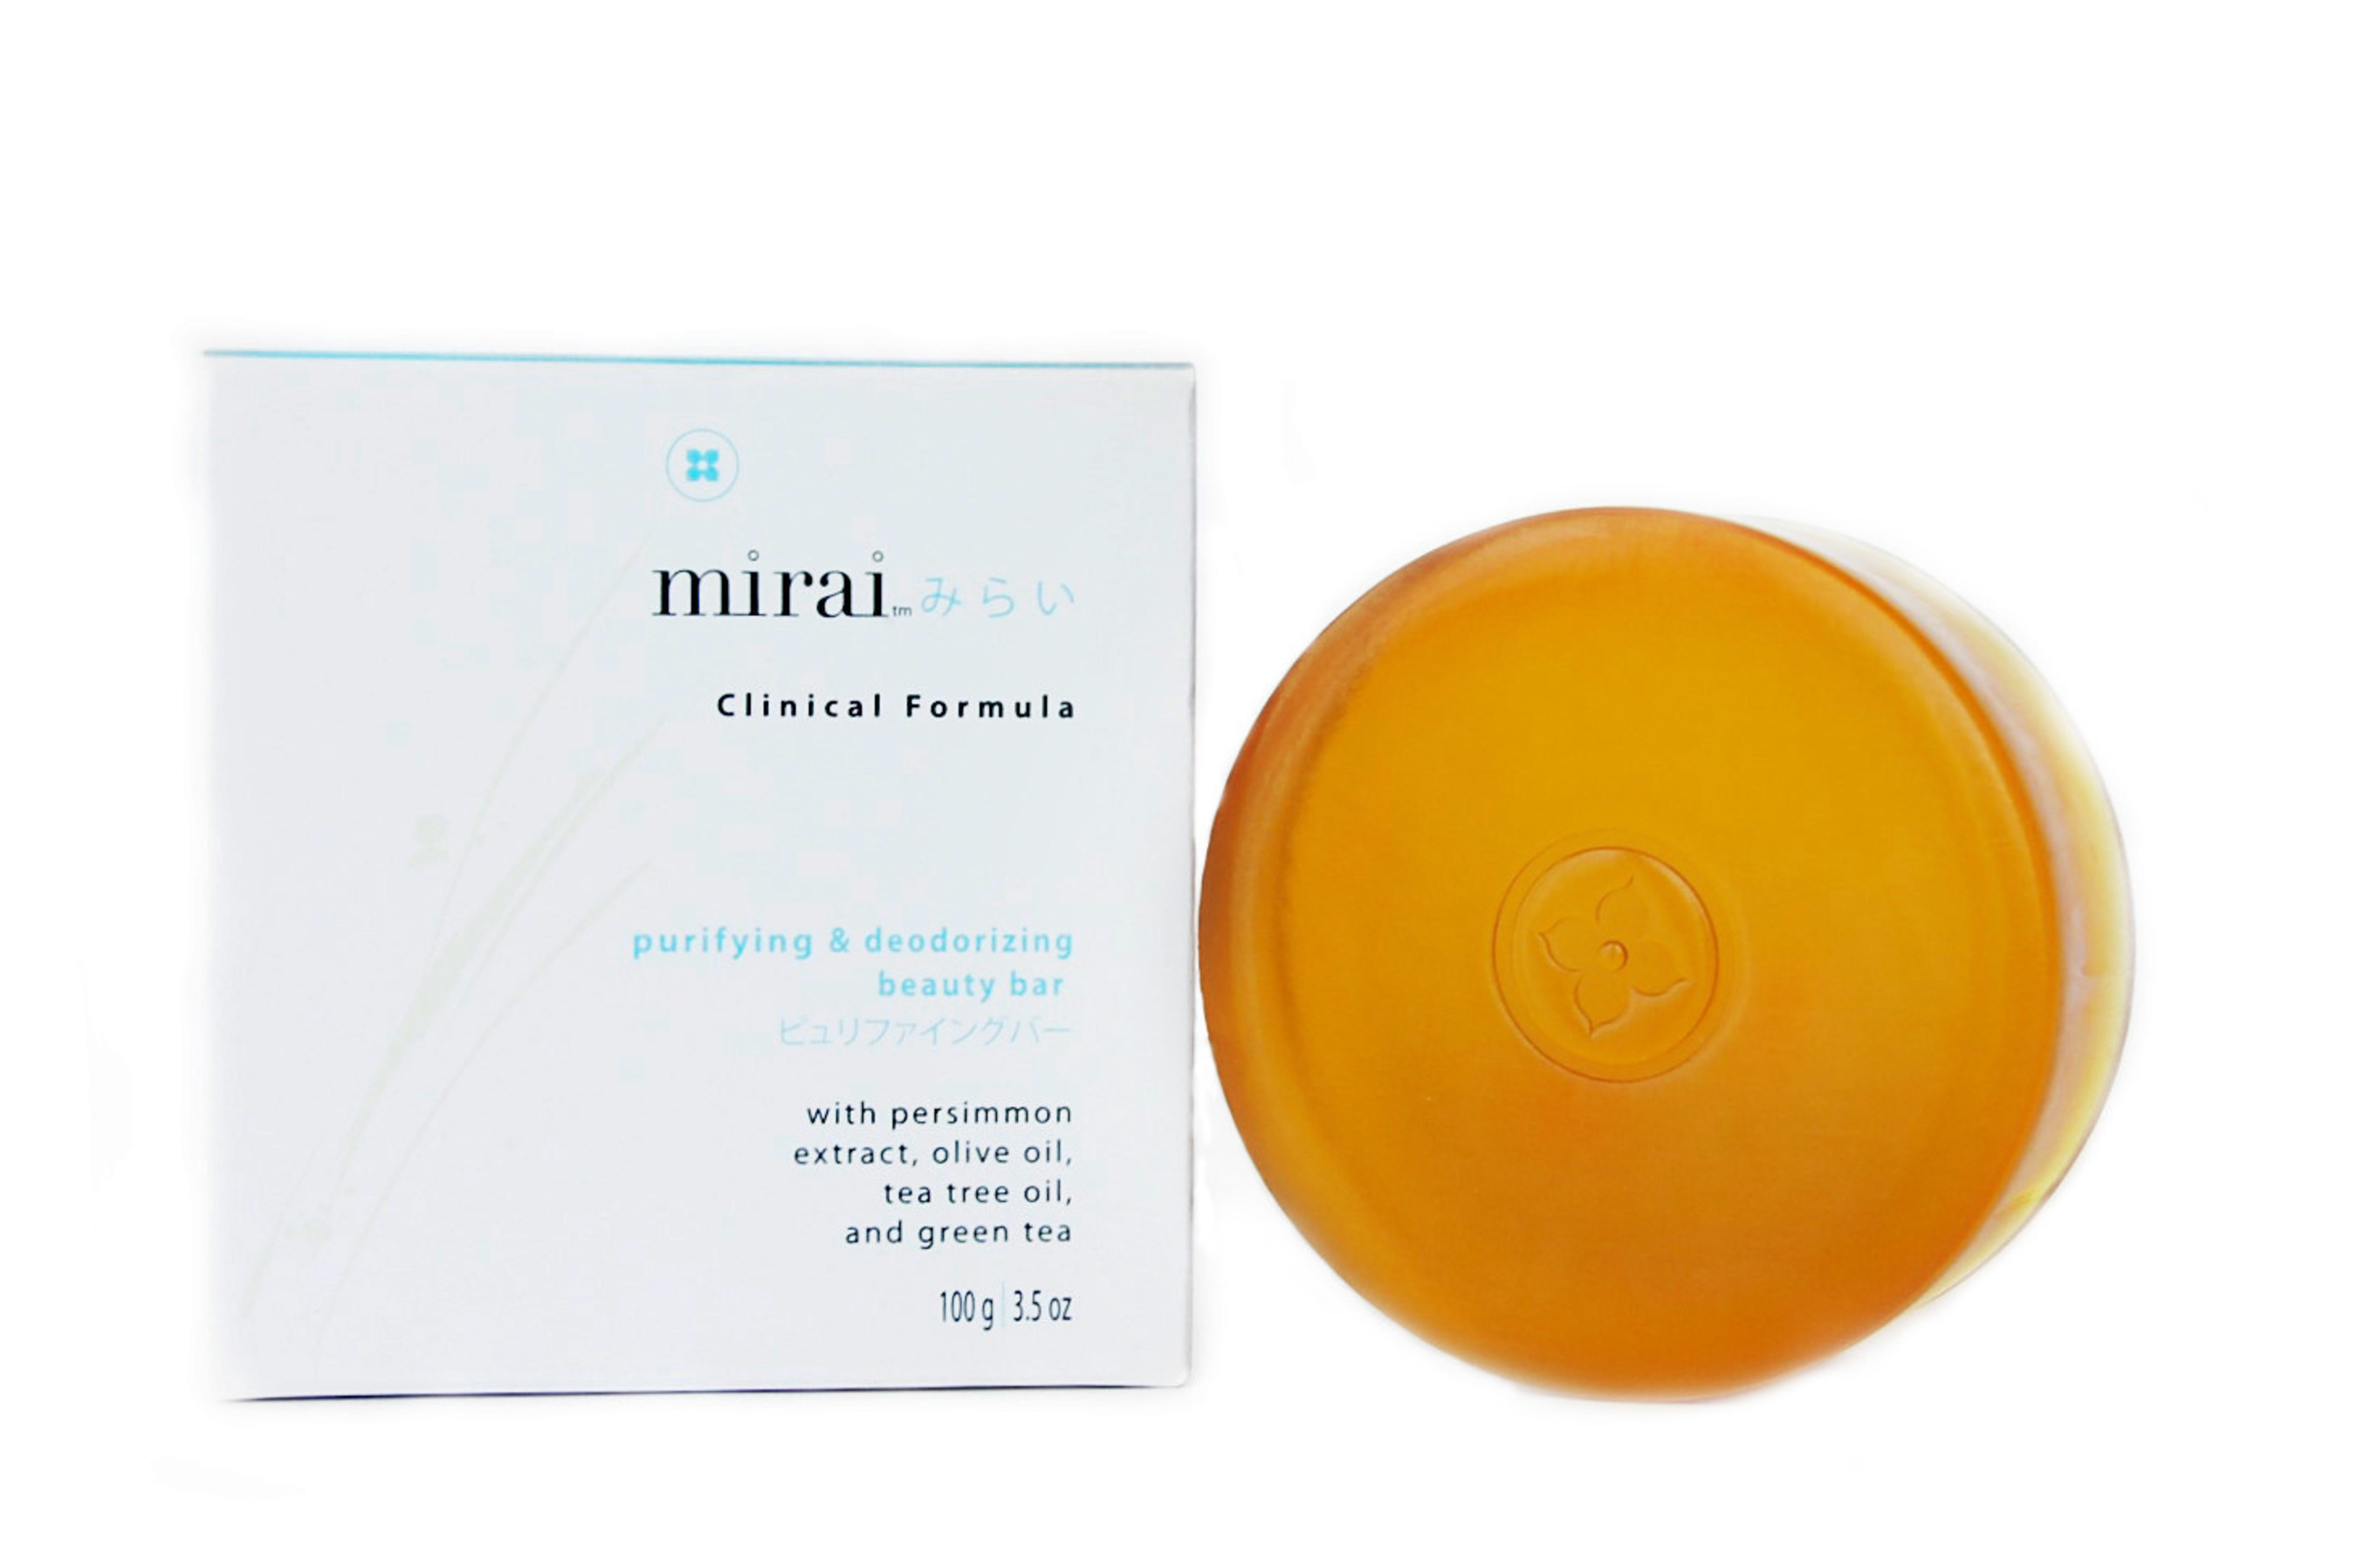 Mirai Clinical Becomes First U.S.A. Member of the Japan Cosmetic Center